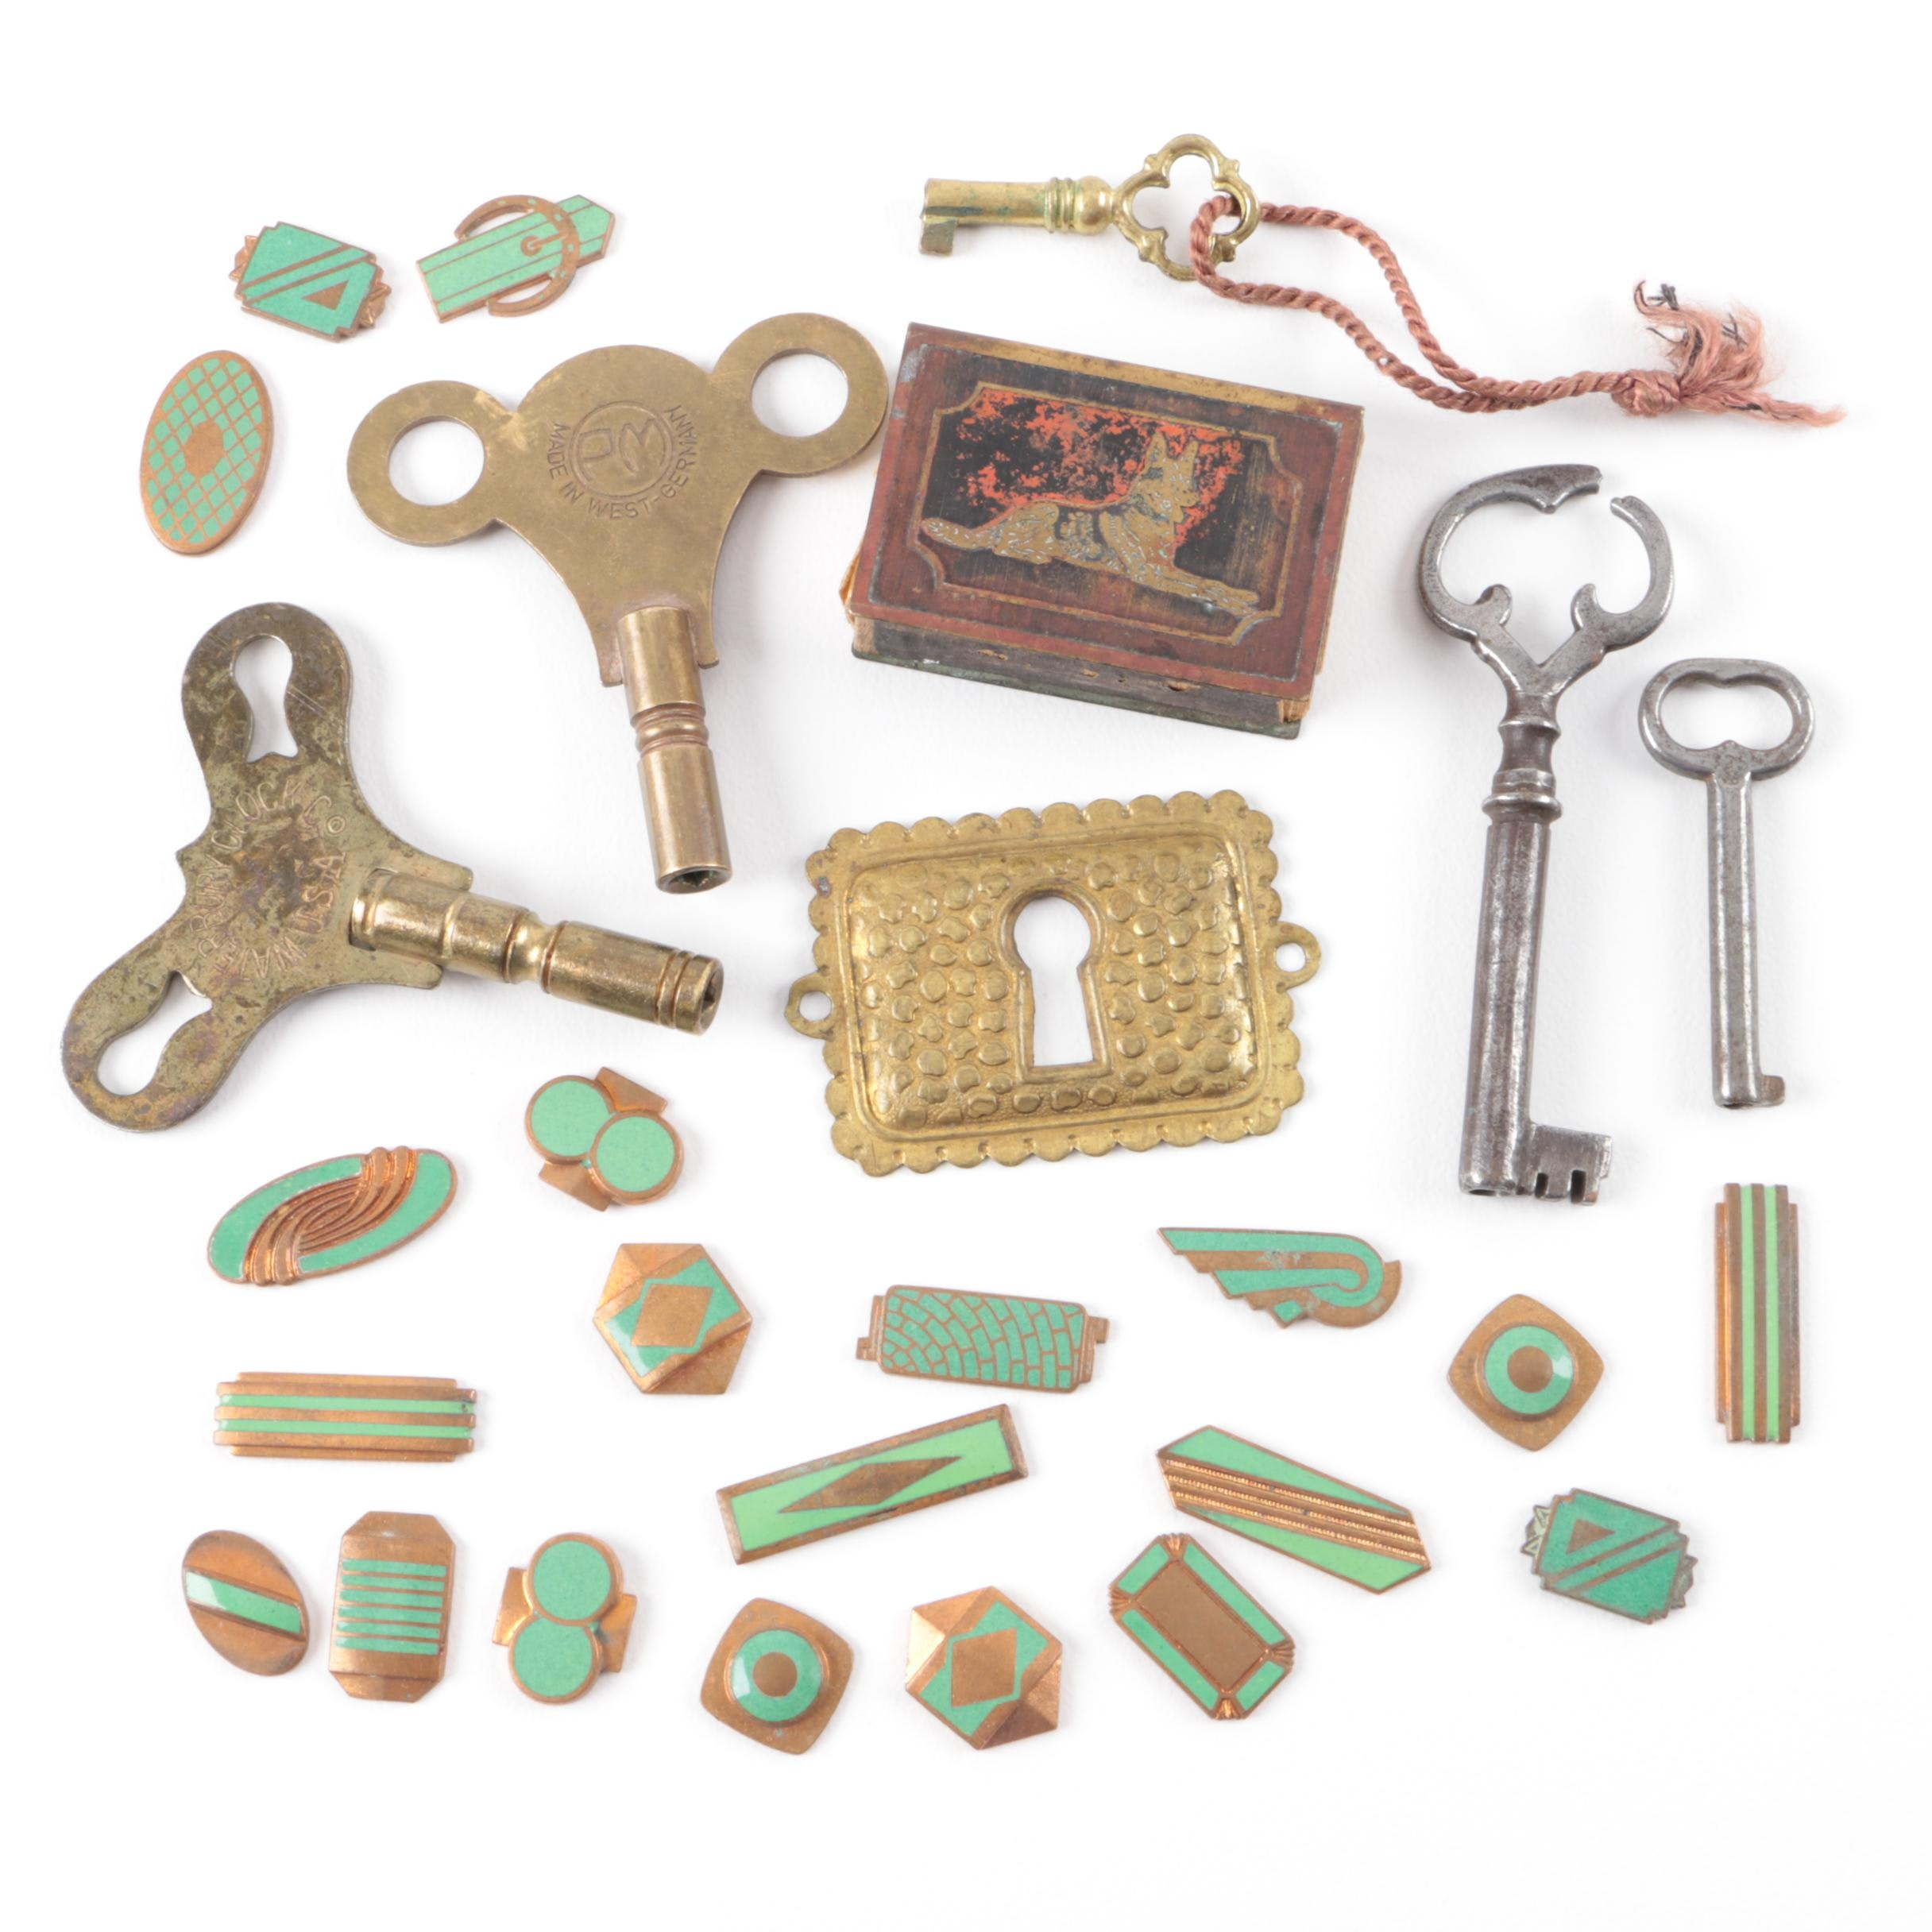 Costume Accessories Including Circa 1940s Enamel on Copper